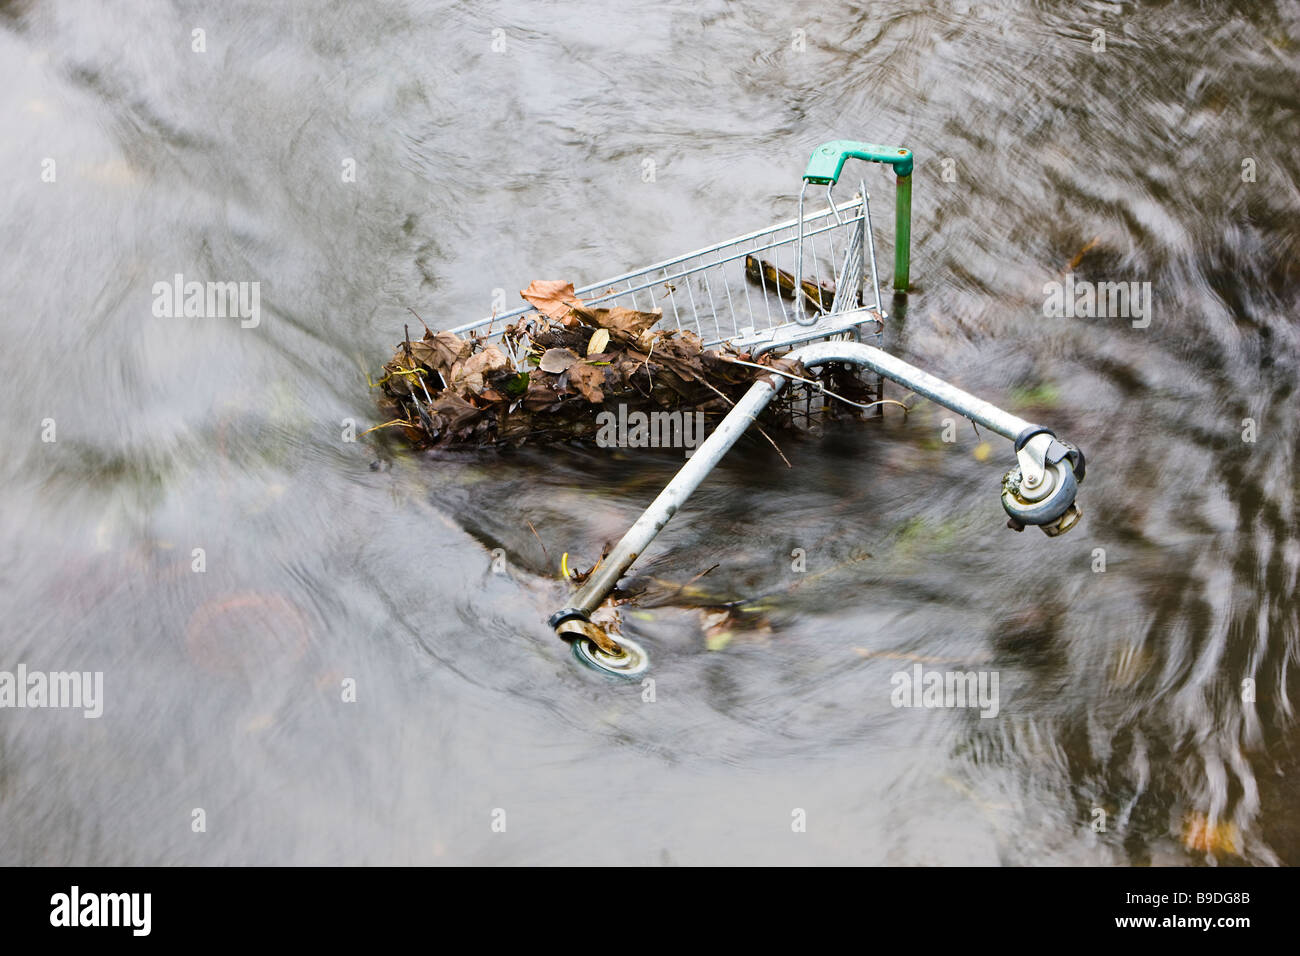 United Kingdom Discarded Shopping Trolley in A River - Stock Image